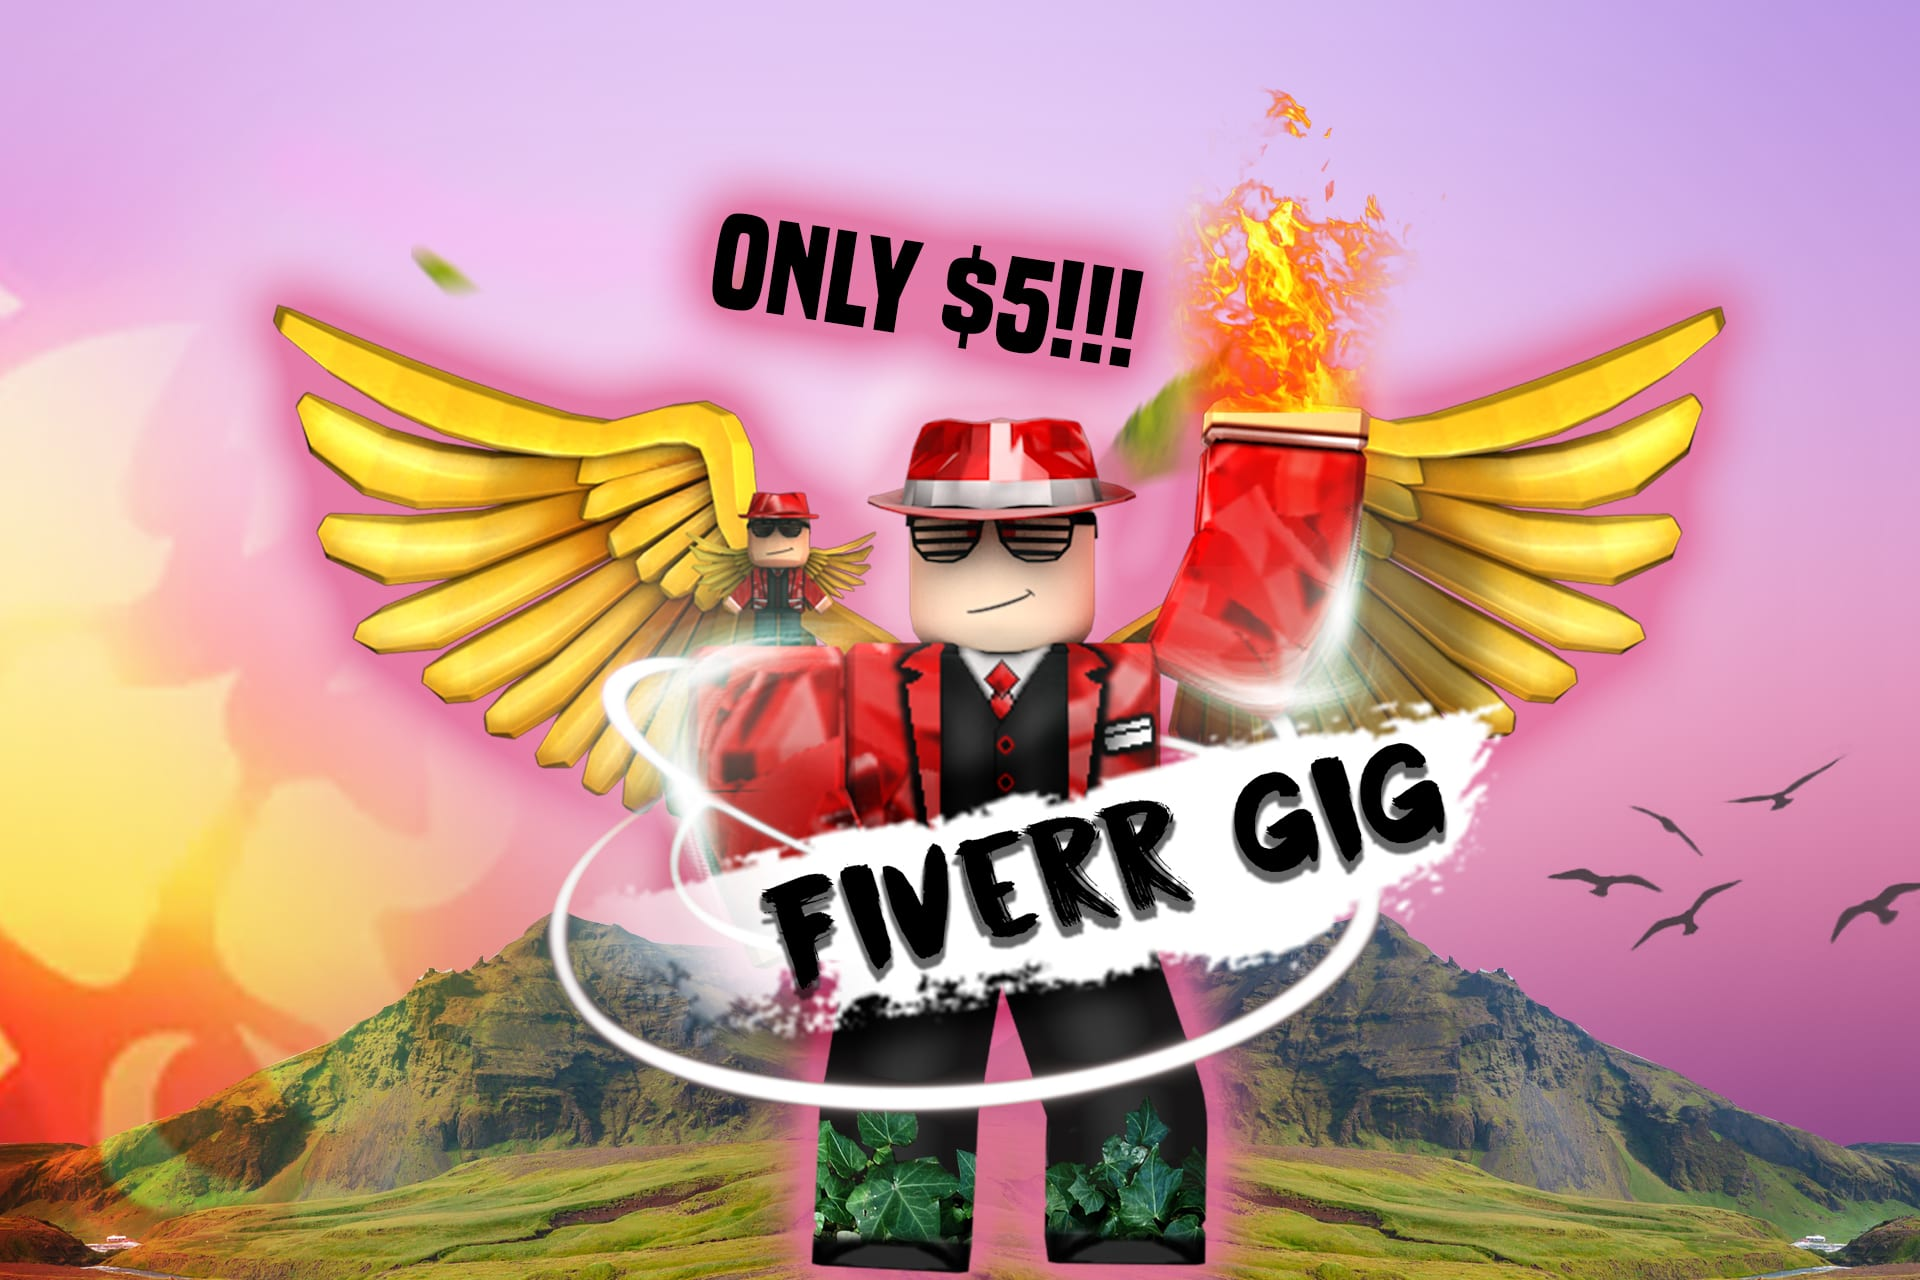 Design You Professional Roblox Gfx Adverts Or Thumbnails By M Pgaming